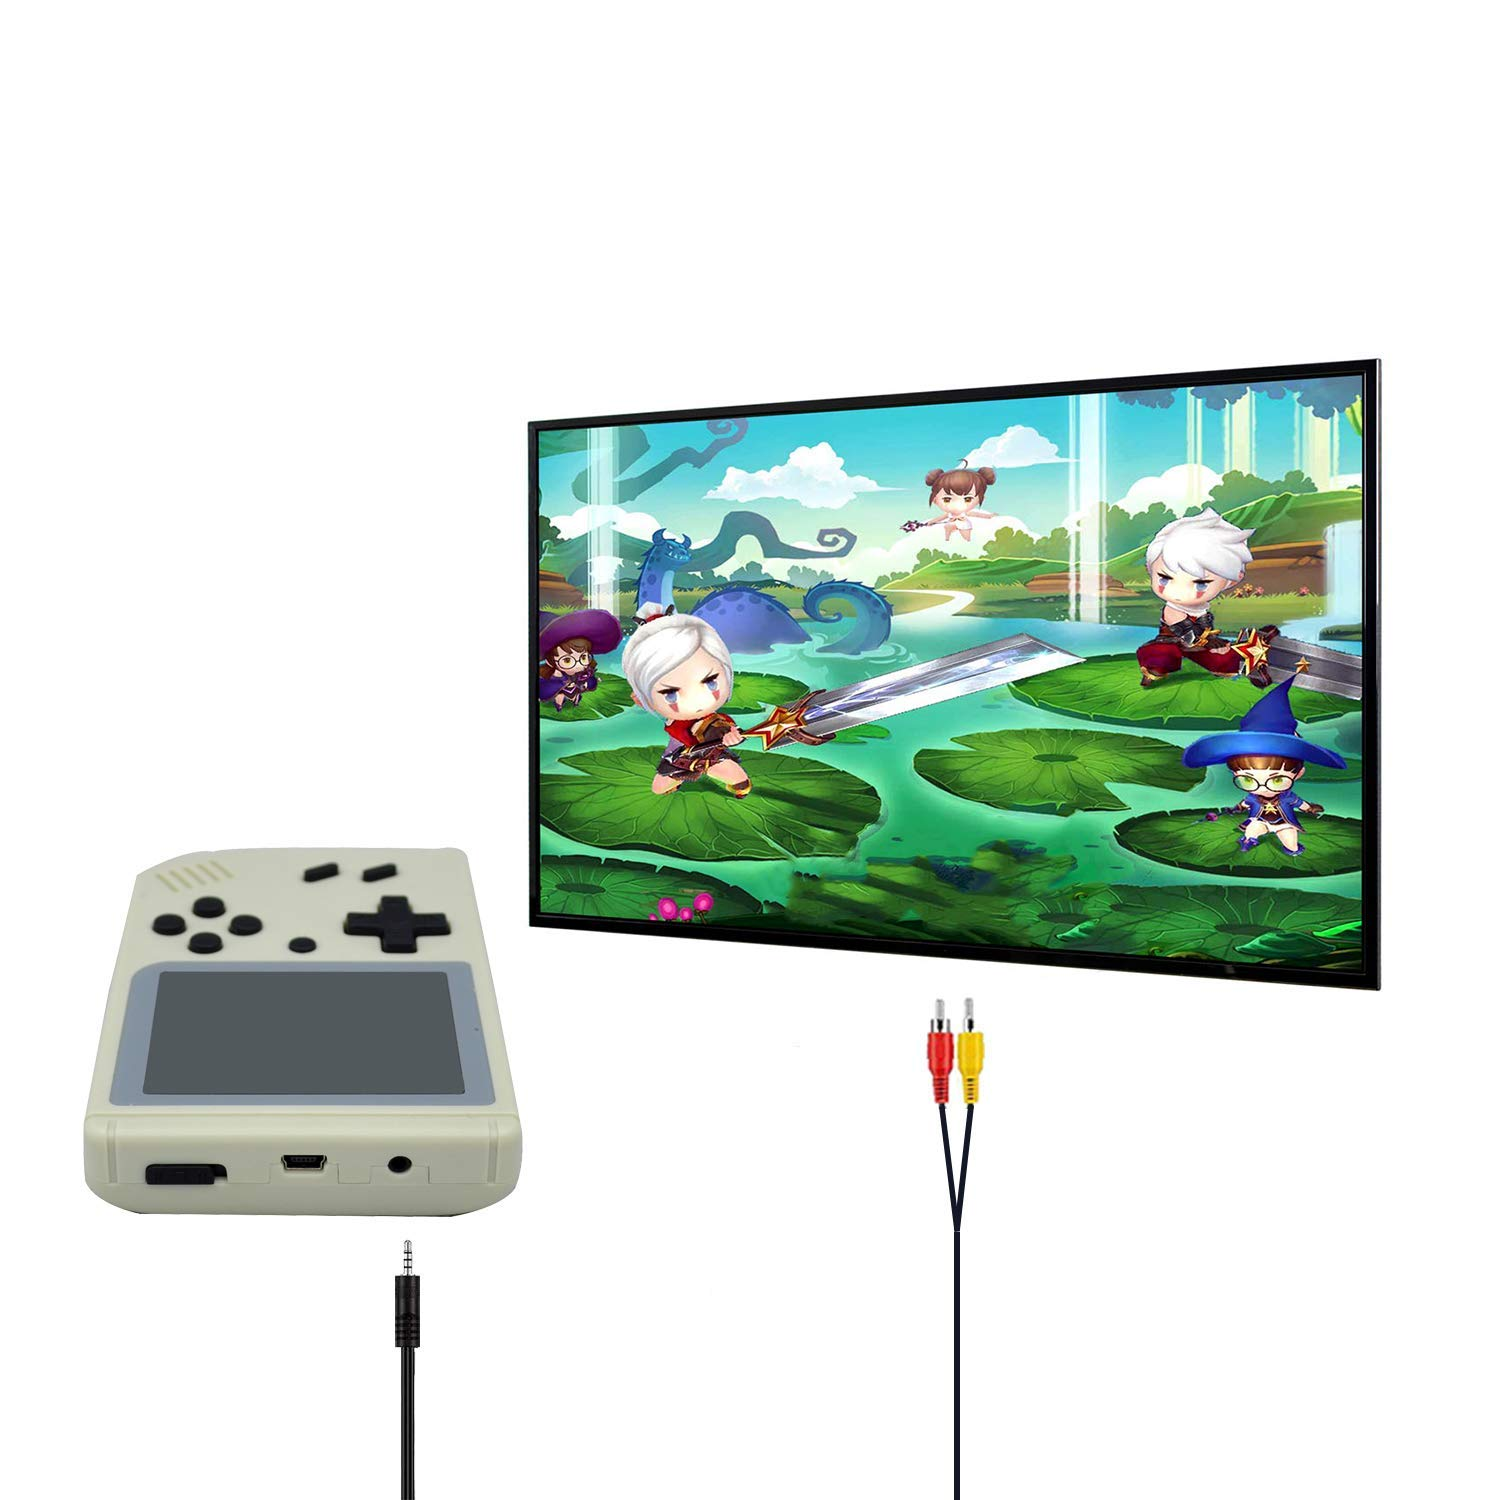 FLYFISH Handheld Game Console, Retro FC Game Console 3 Inch 168 Classic Games , Birthday Present for Children -White by FLYFISH (Image #6)